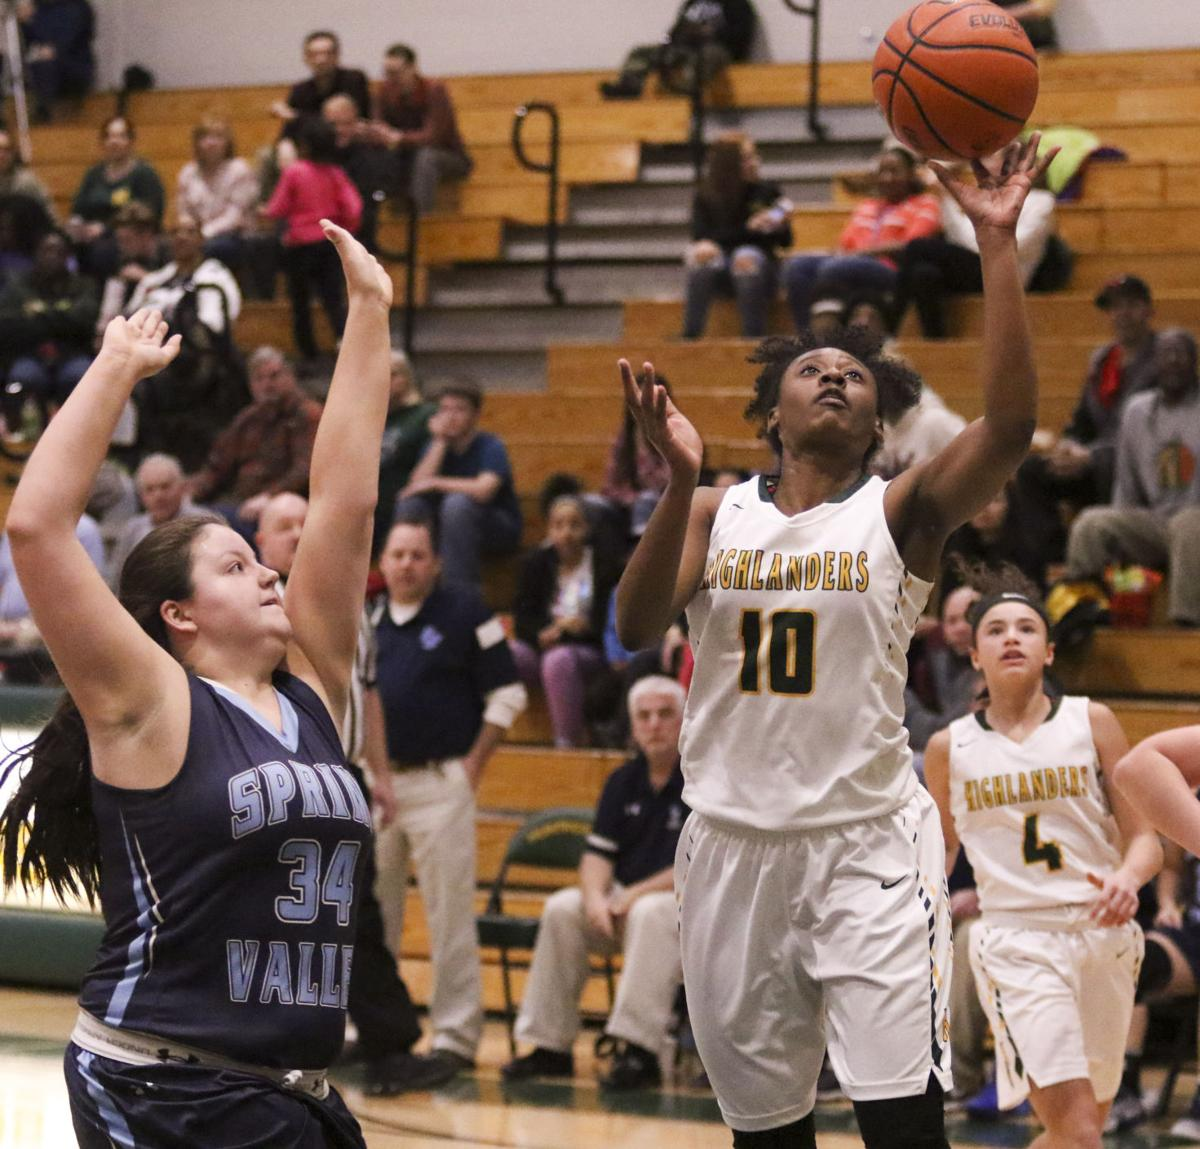 valley springs girls View the schedule, scores, league standings, articles and photos for the valley springs tigers girls basketball team on maxpreps.